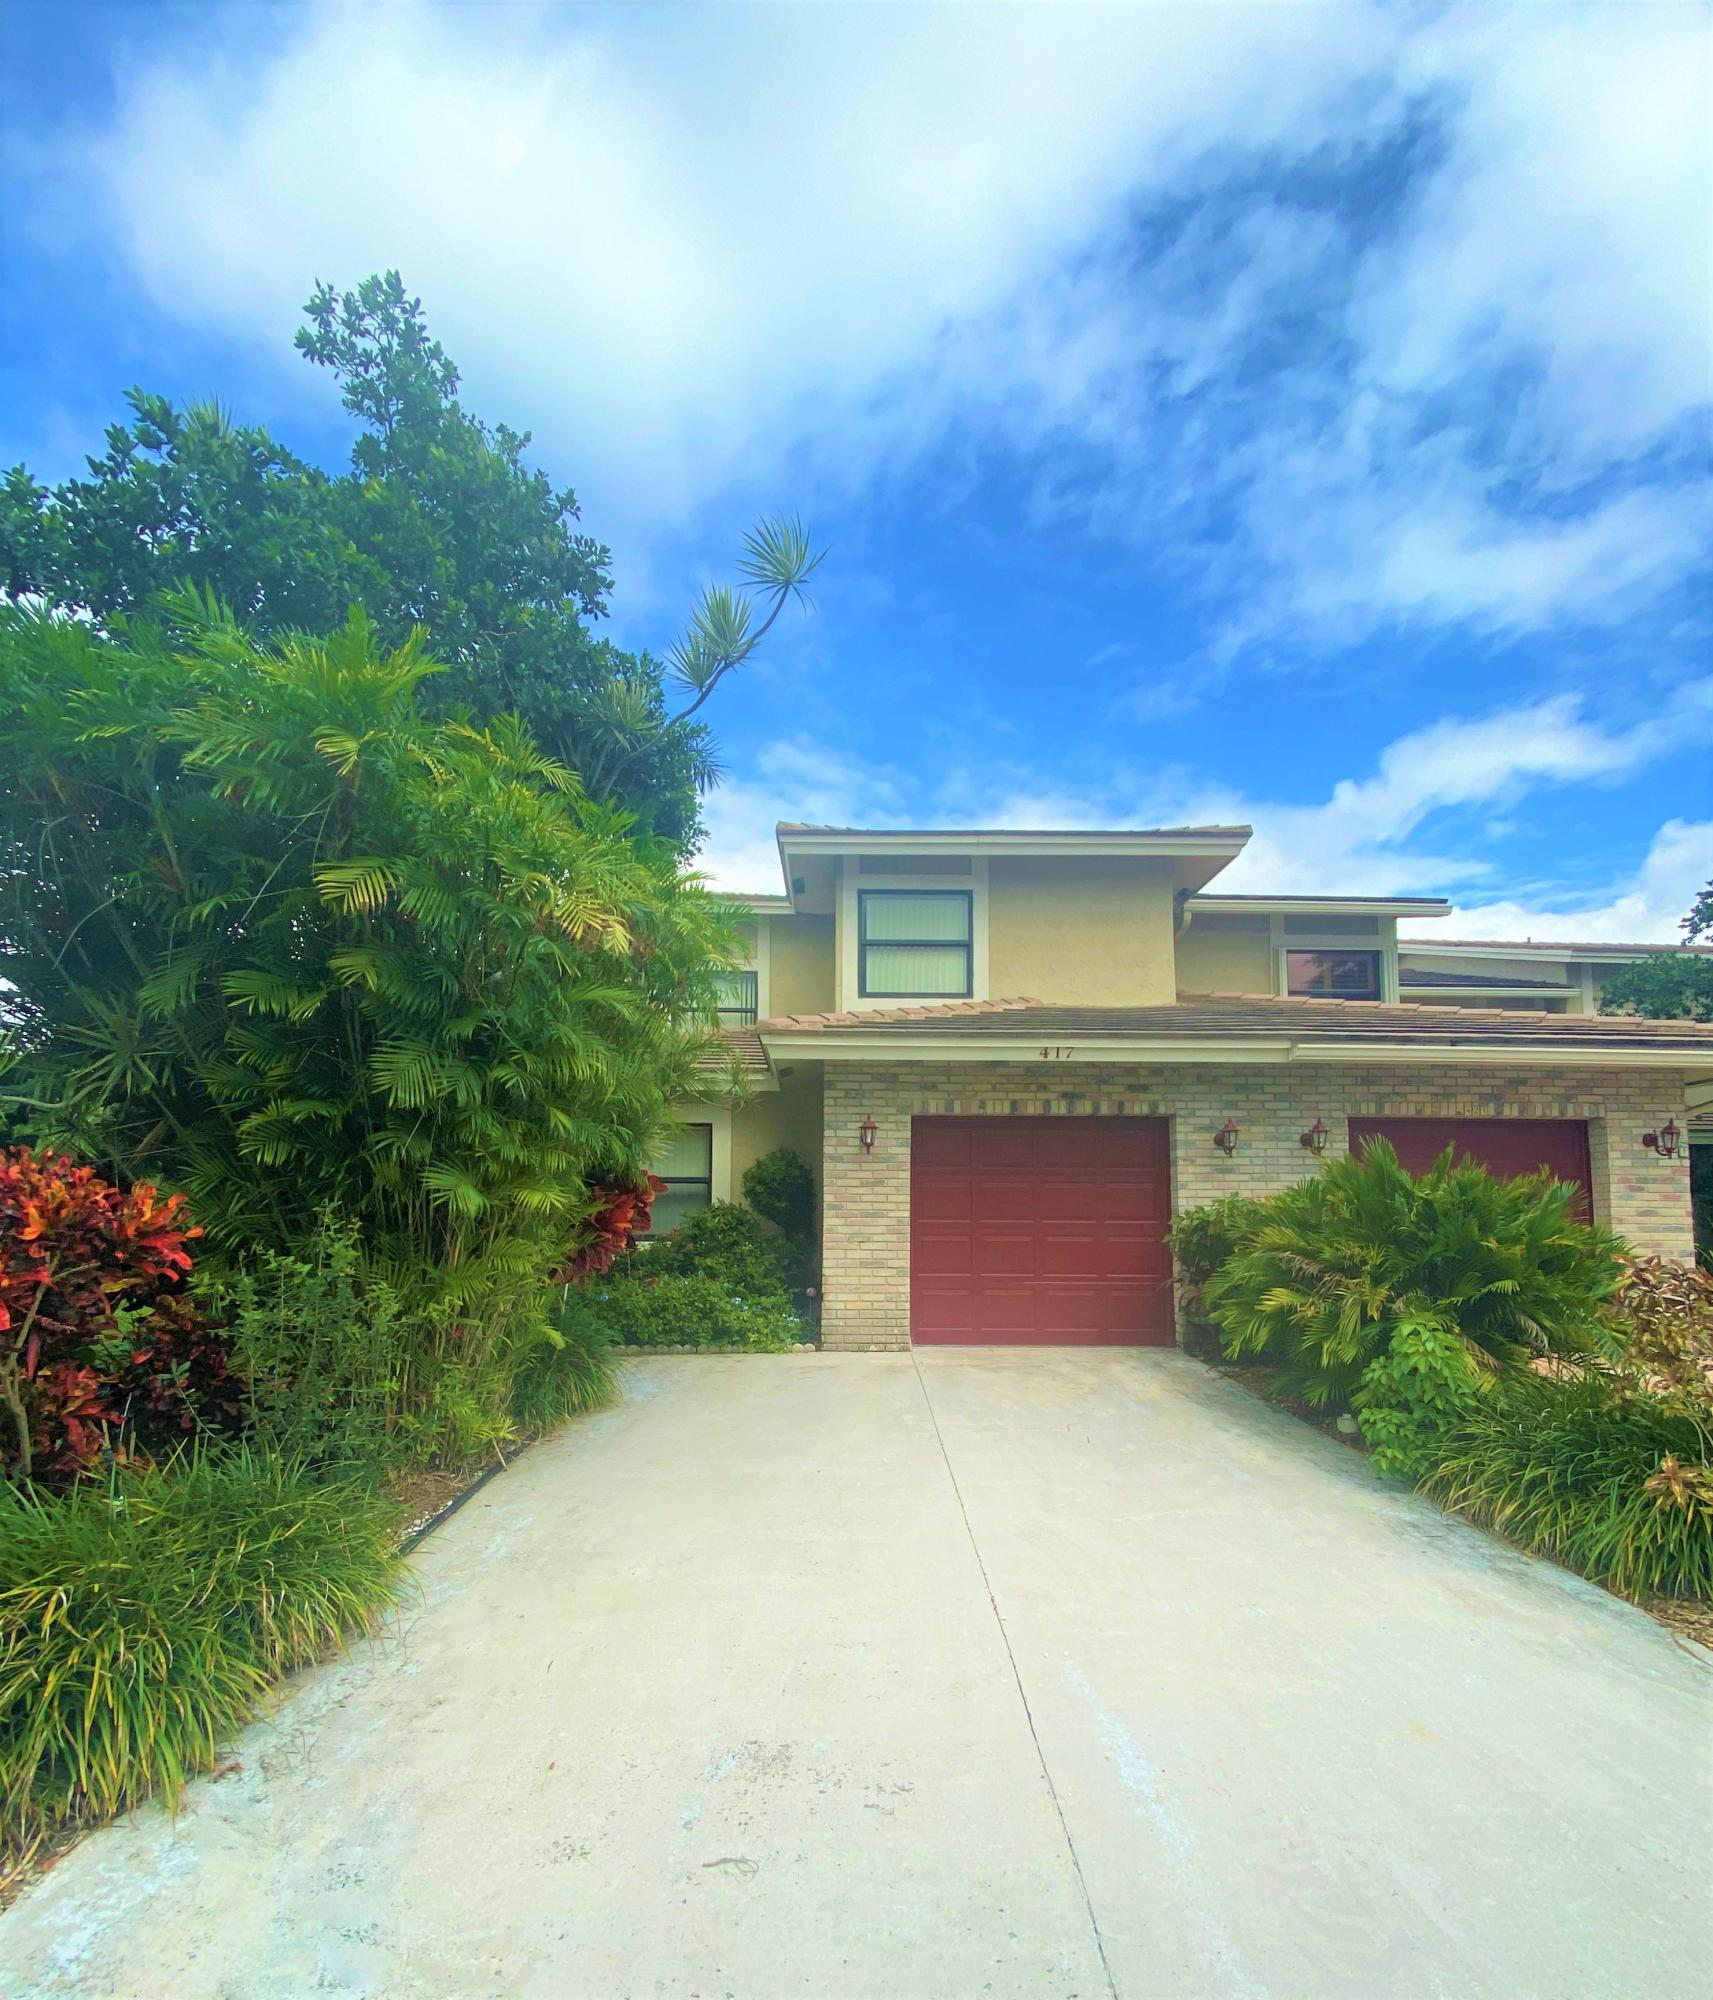 417 Deer Creek Lake Point S Deerfield Beach,Florida 33441,3 Bedrooms Bedrooms,3 BathroomsBathrooms,Townhouse,Deer Creek Lake Point S,RX-10570043